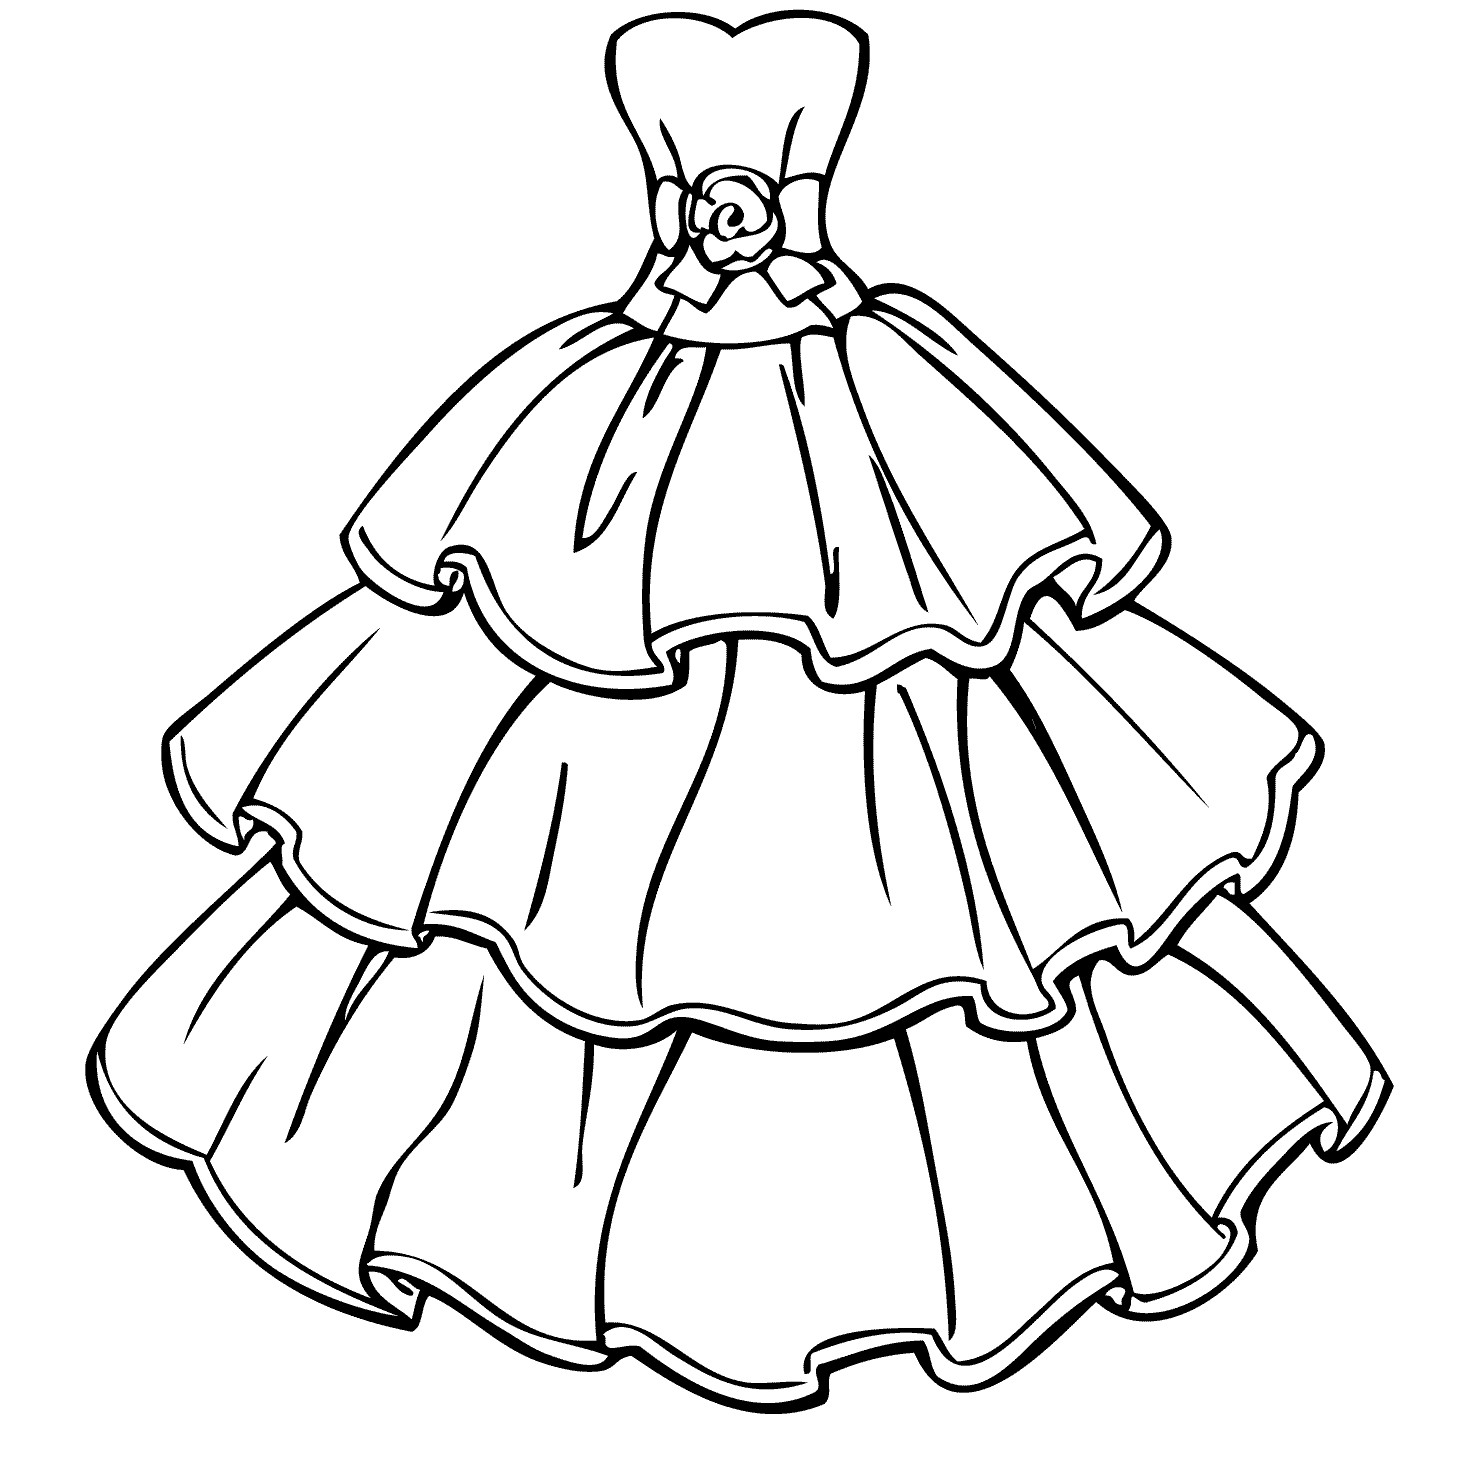 colouring pages dresses dress coloring pages to download and print for free pages colouring dresses